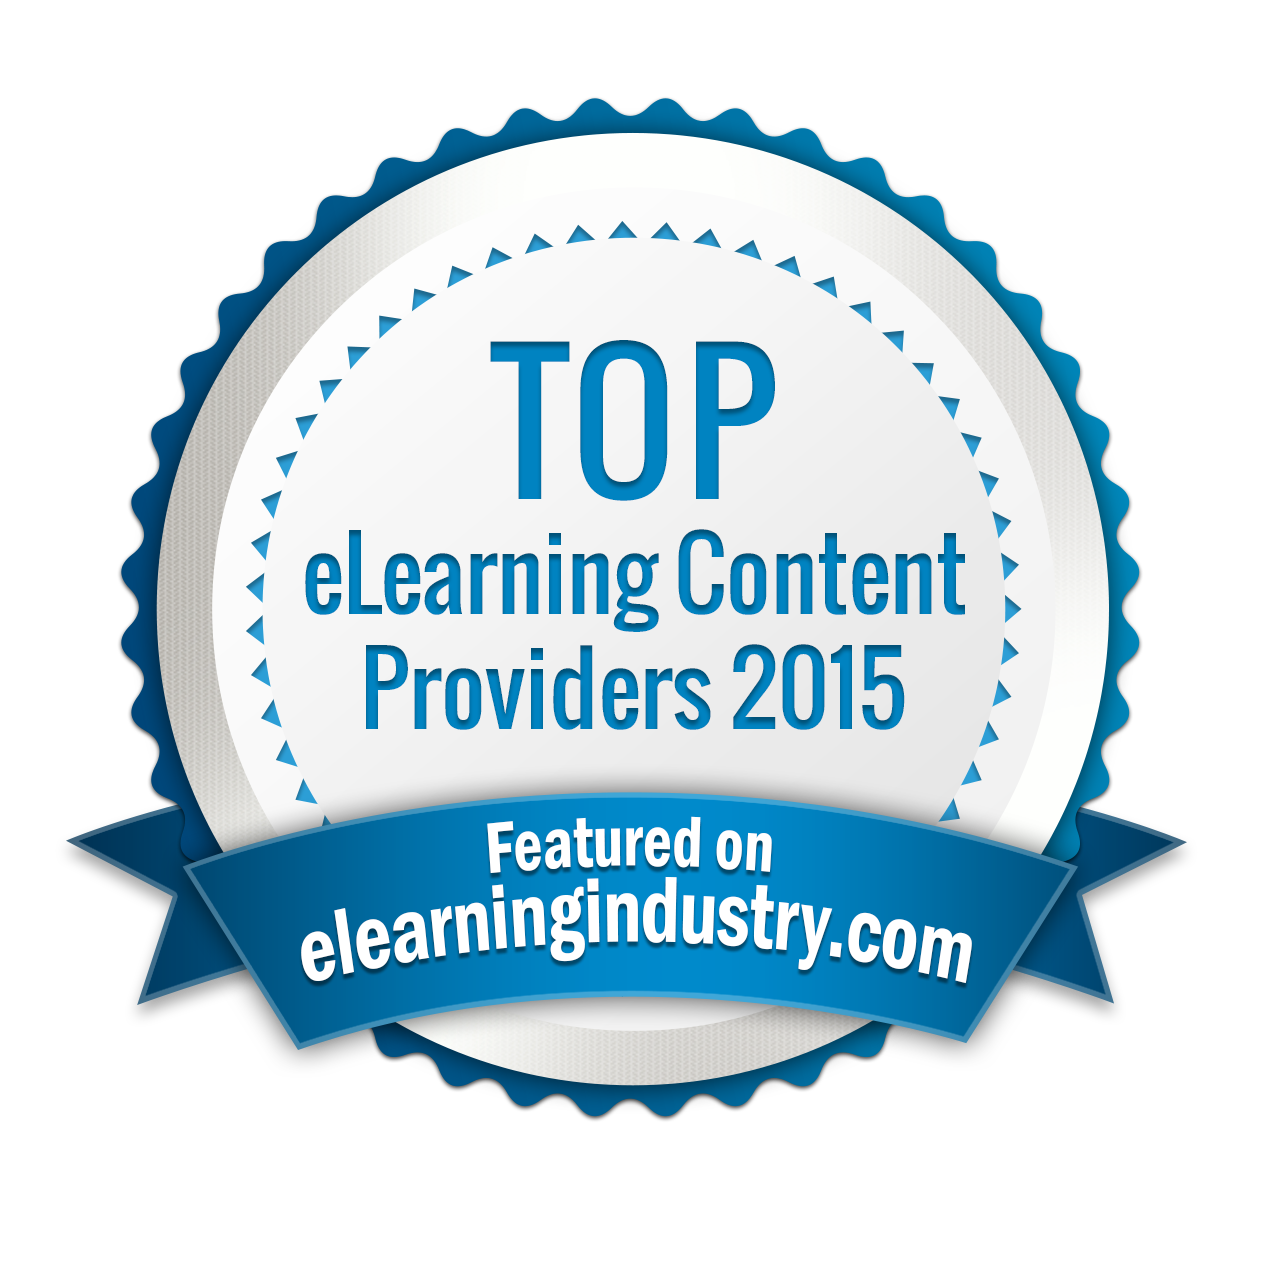 Top E-Learning Content Providers 2015